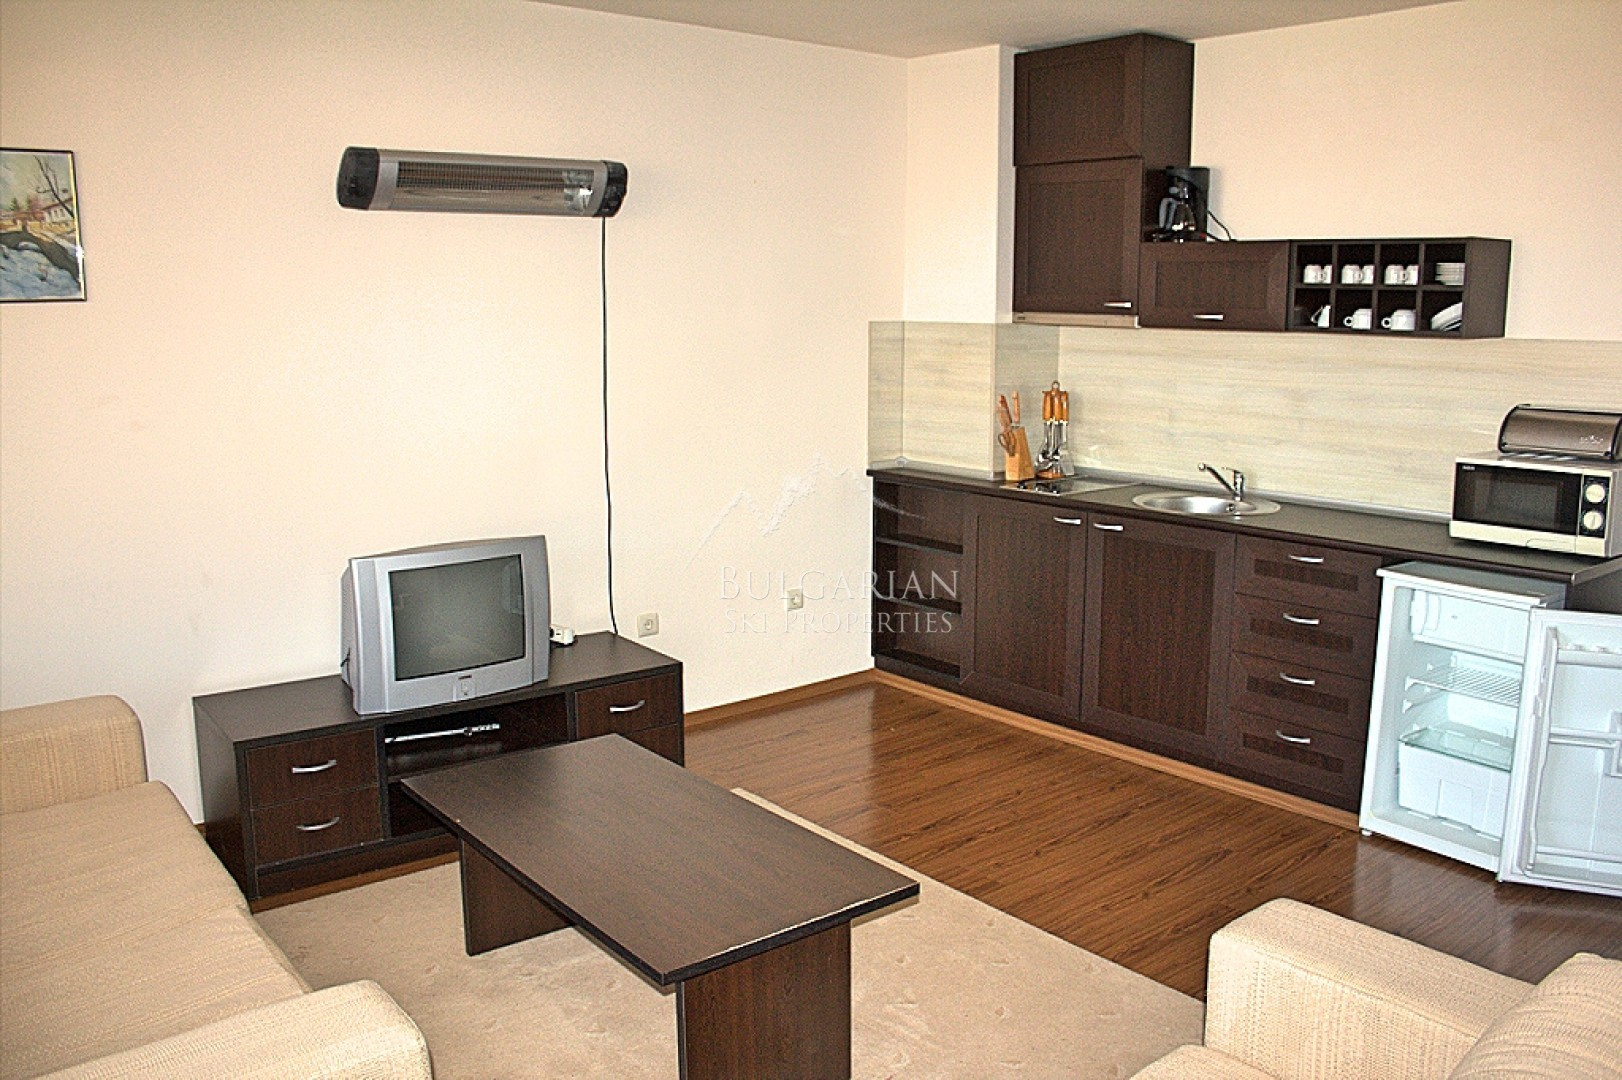 Bansko Royal Towers: spacious studio for sale next to the ski lift